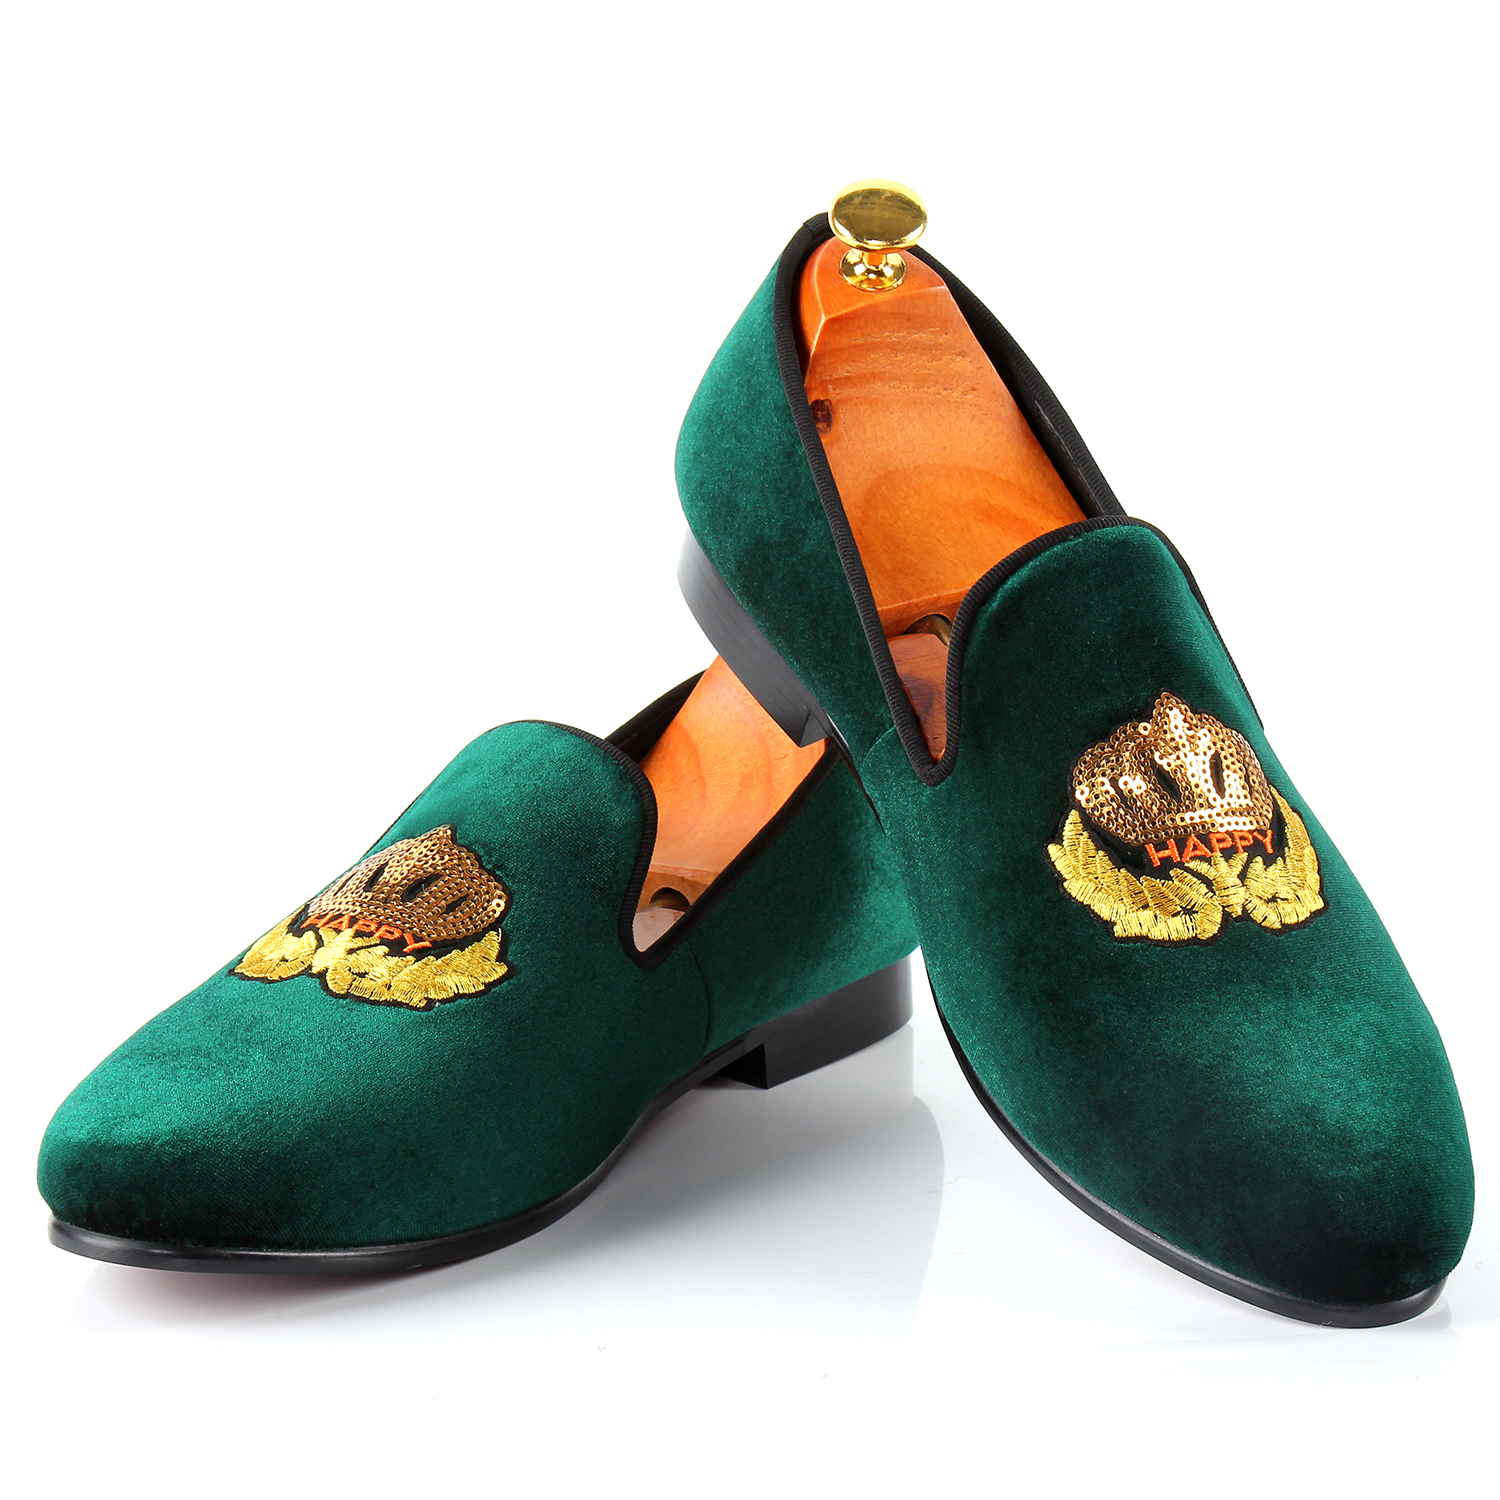 Harpelunde Men Classic Shoes Wholesale Price Slip-on Wedding Shoes Motif Velvet Loafers Slippers Size 7-14